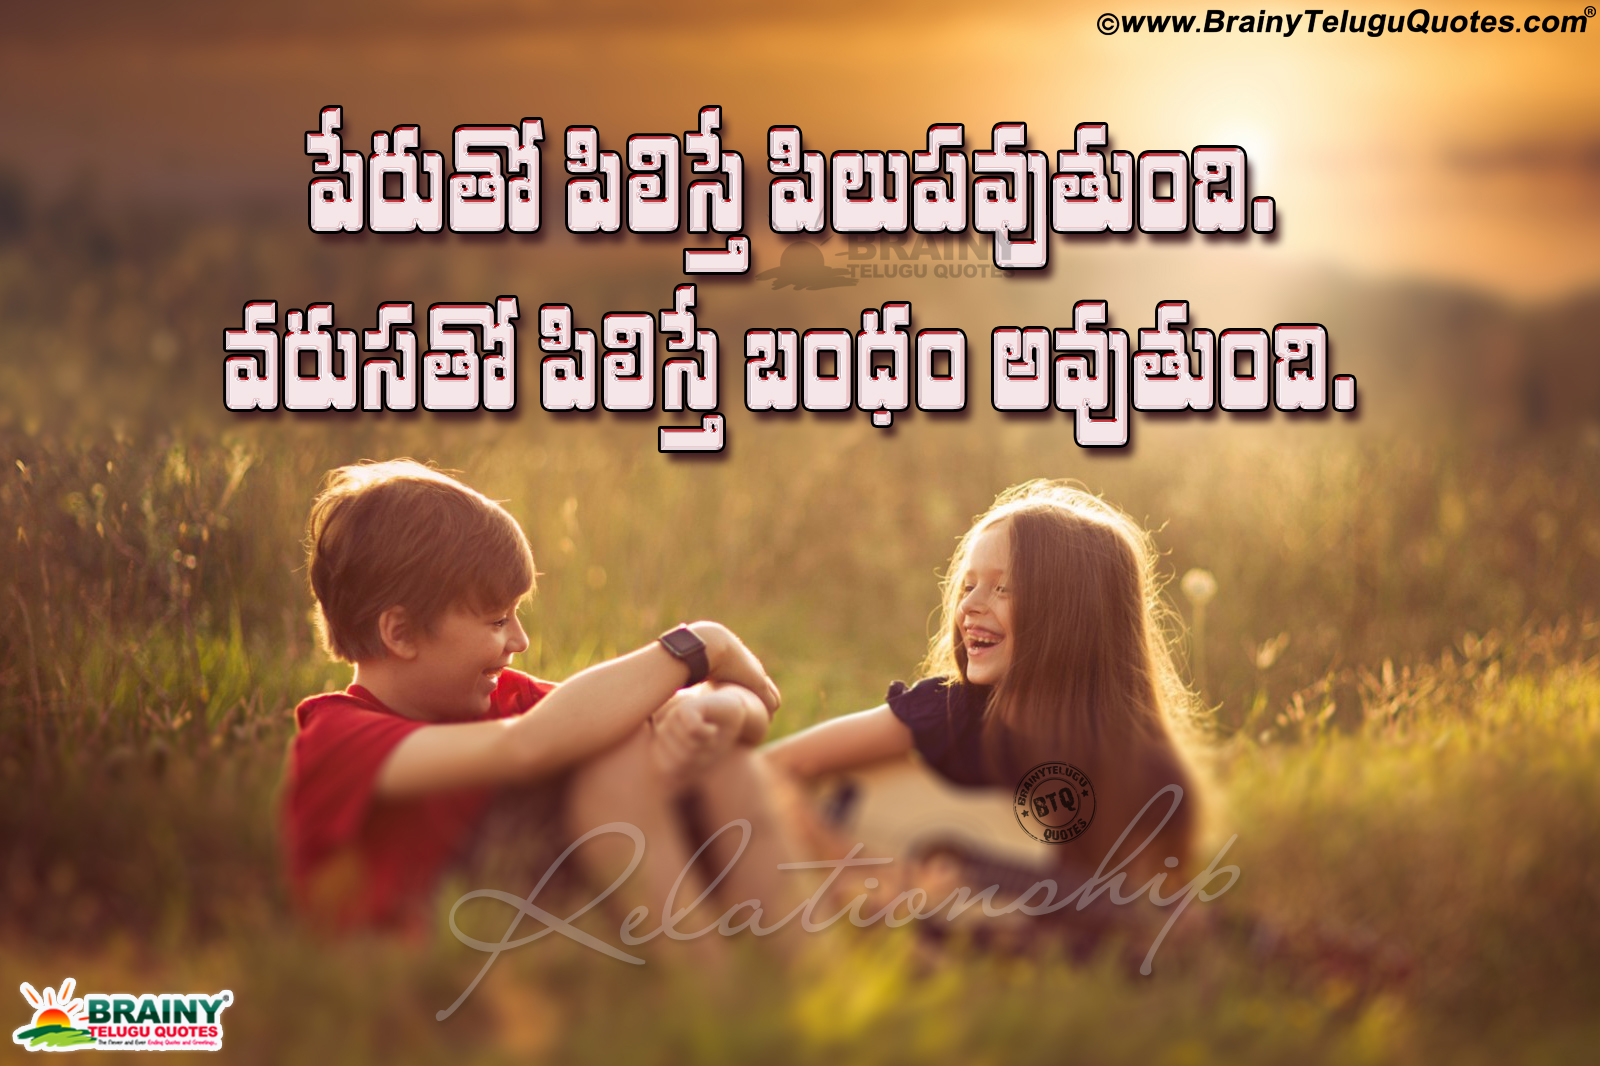 Quotes About The Importance Of Friendship Telugu Famous Heart Touching Relationship Value Quotes With Cute